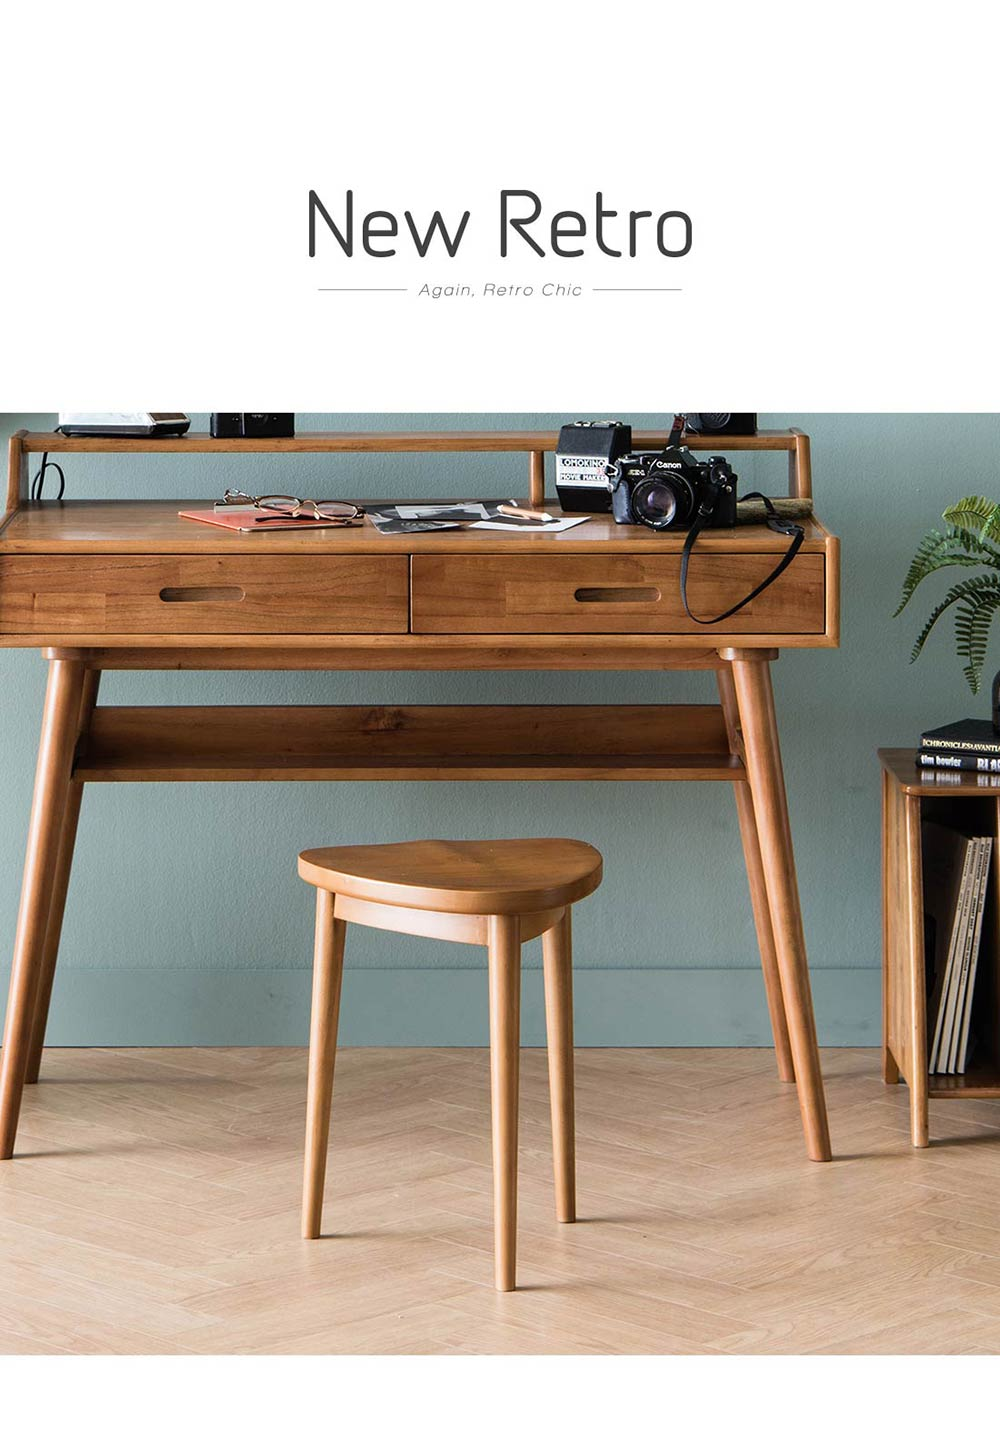 New_Retro_Stool_Furniture_Online_Singapore_Scenery_by_born_in_colour